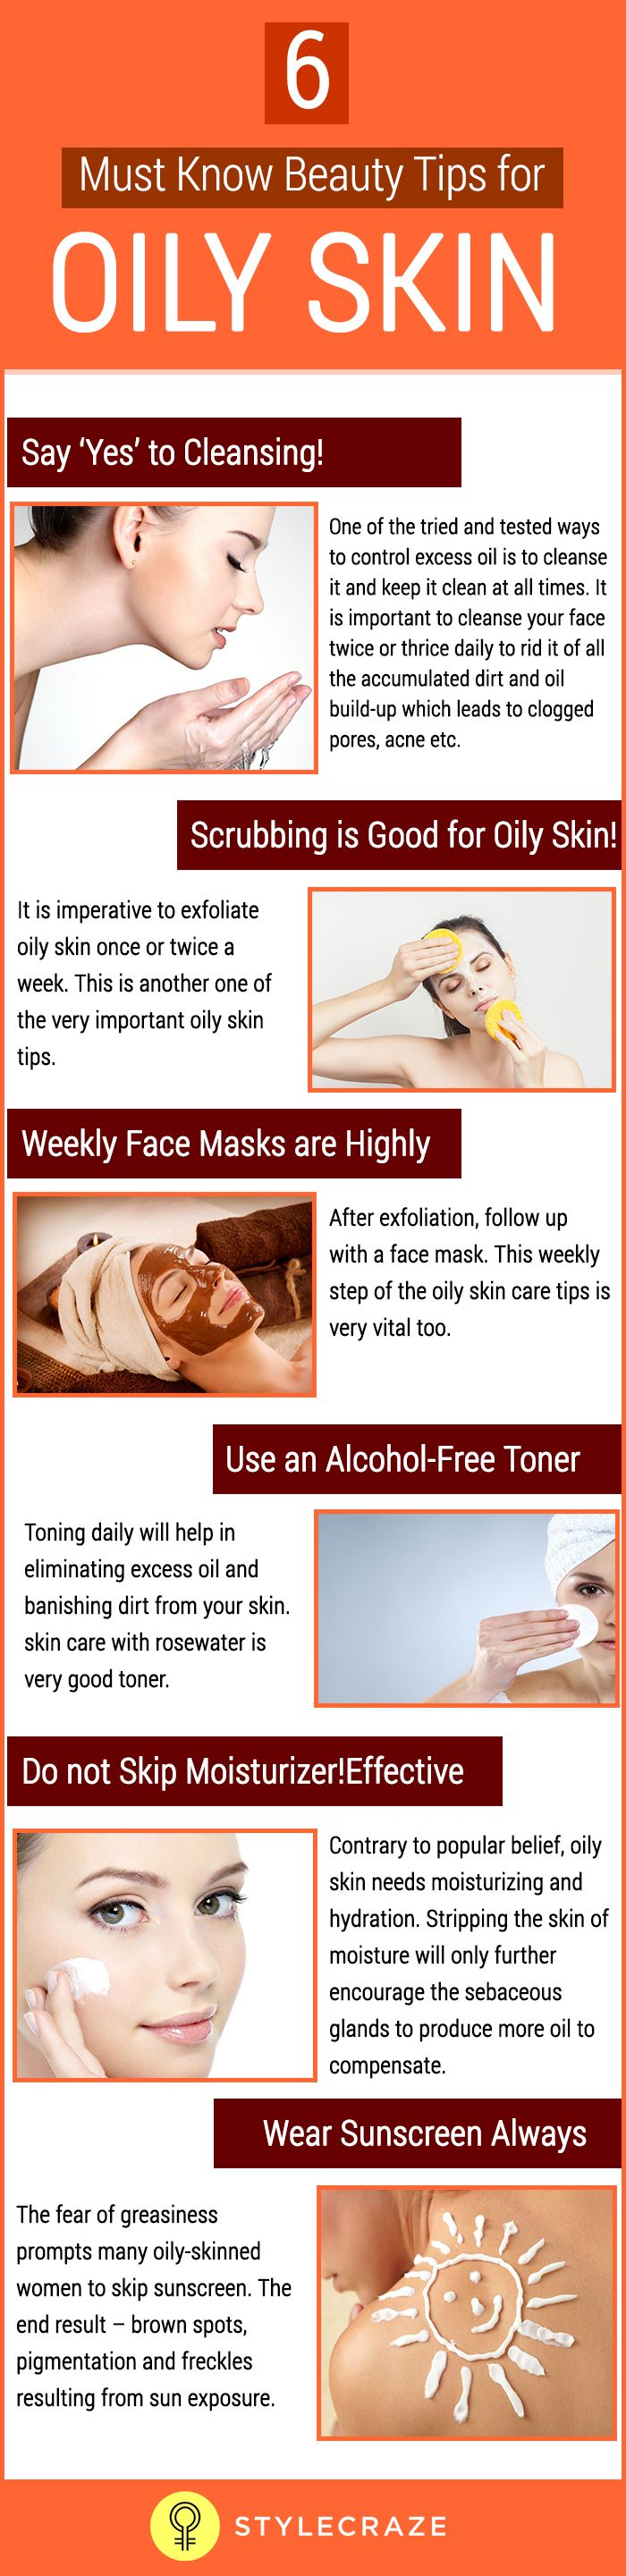 Oily skin can take you through tough times as the sebaceous glands are over-active, producing excess sebum, contributing to a shiny, greasy-looking face and skin concerns such as acne, blackheads and whiteheads, enlarged or clogged pores etc. Pollution and dirt can even lead to comedones (skin-bumps) for those with very oily skin. The solution for this is to keep the oil production in control by following some simple beauty and skin care tips for oily skin.